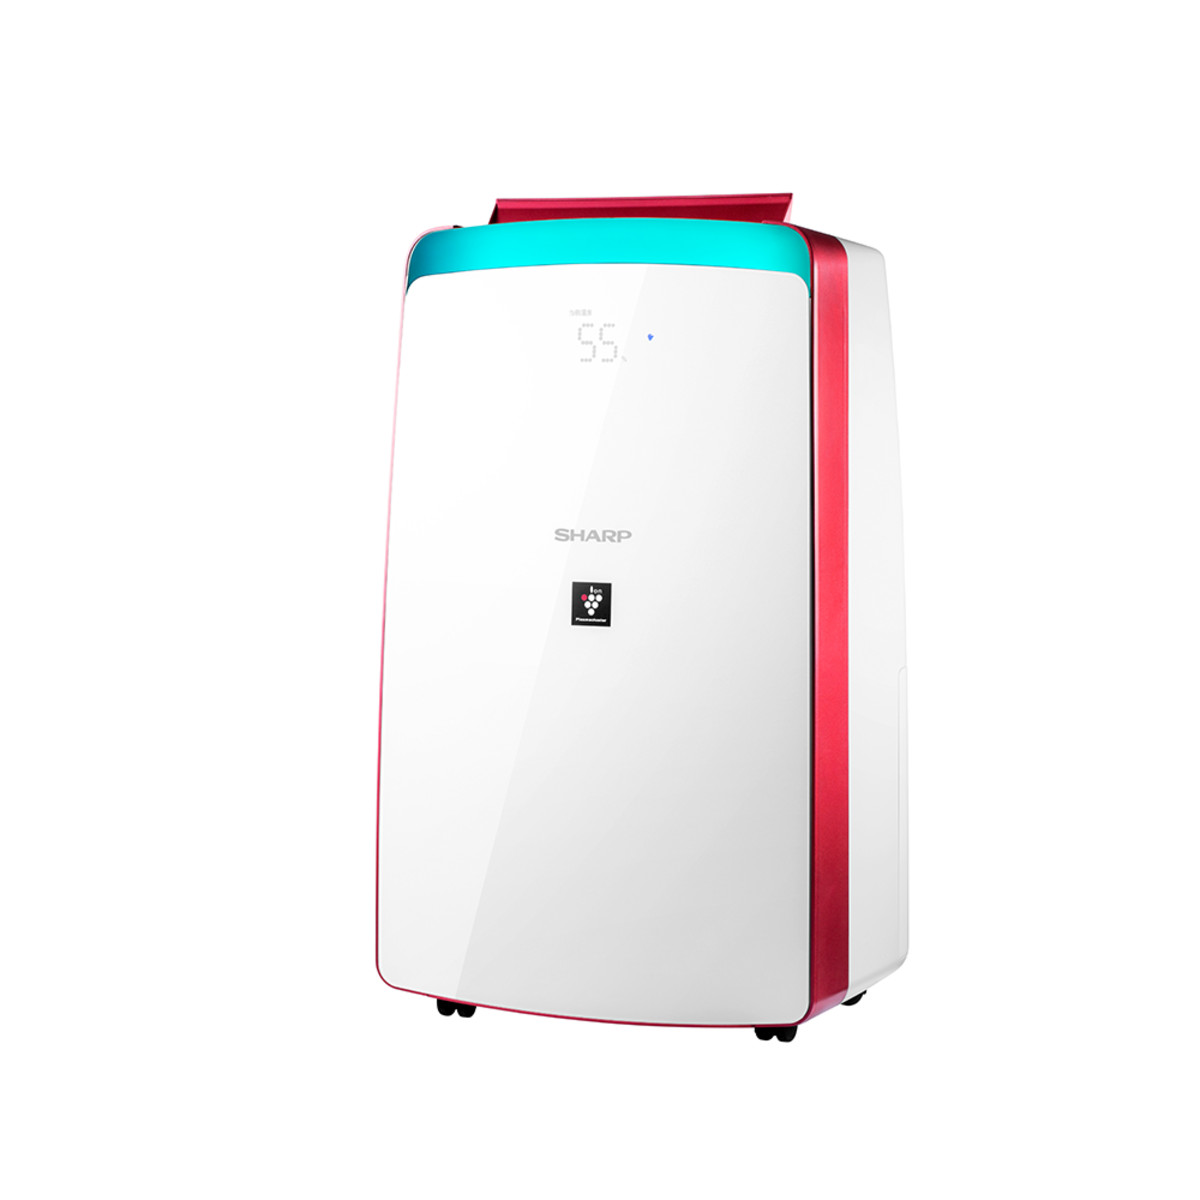 HD Plasmacluster Dehumidifier 25L (Red)